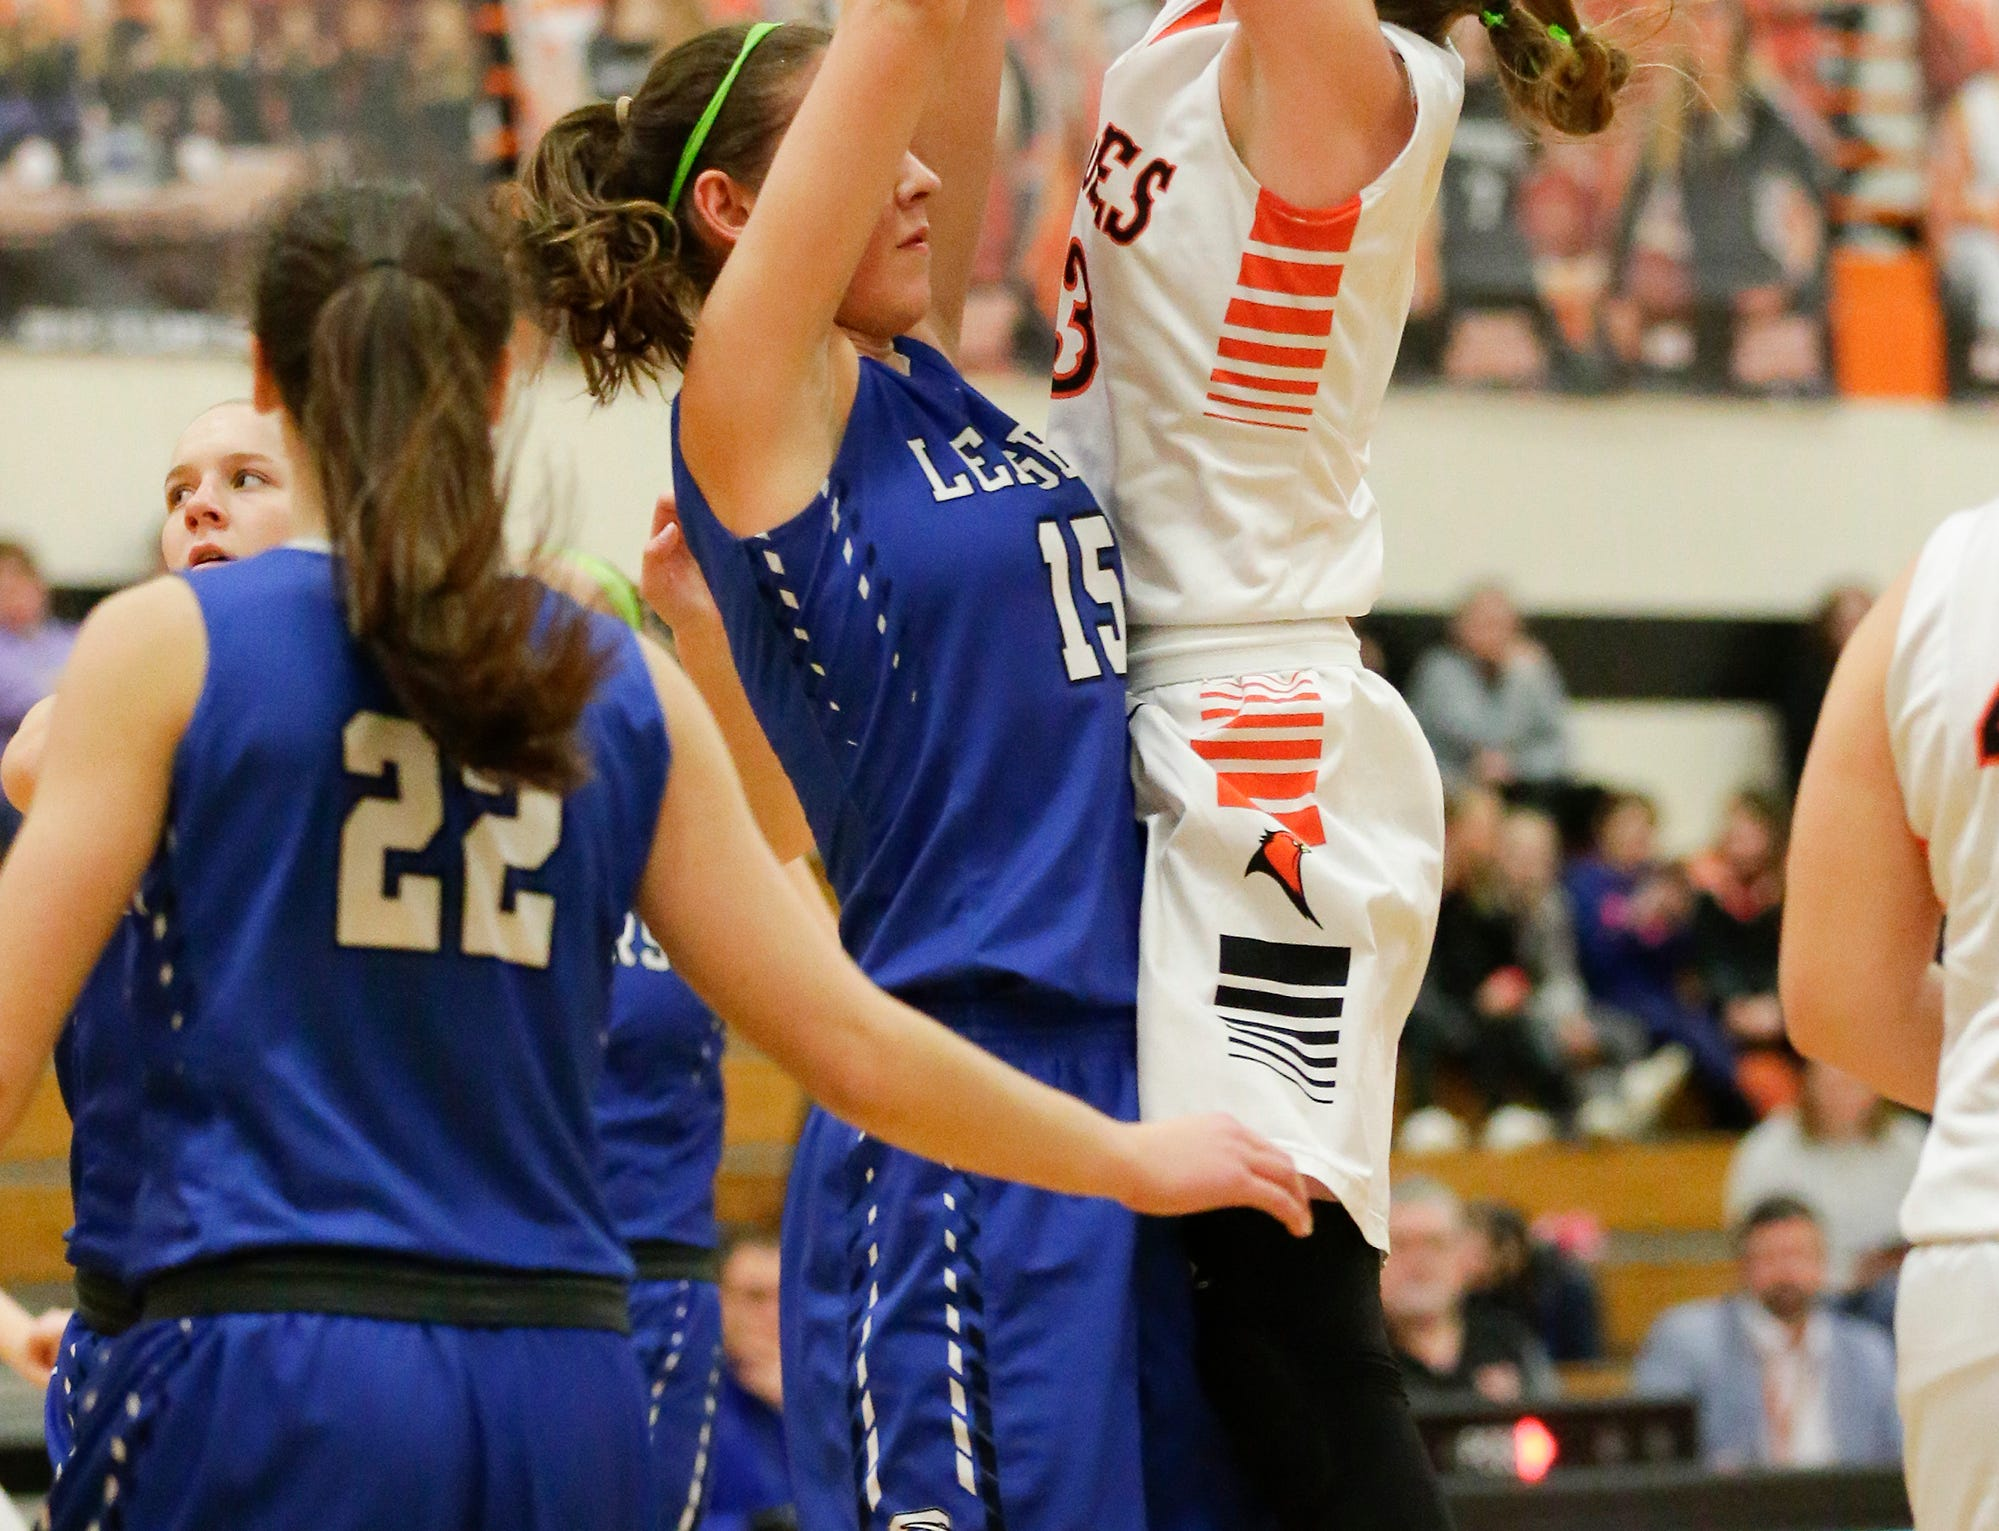 North Fond du Lac High School girls basketball's Rebecca Kingsland goes up for a shot over St. Mary's Springs Academy's Maddie Gehring during their game Friday, January 4, 2019 in North Fond du lac. Doug Raflik/USA TODAY NETWORK-Wisconsin